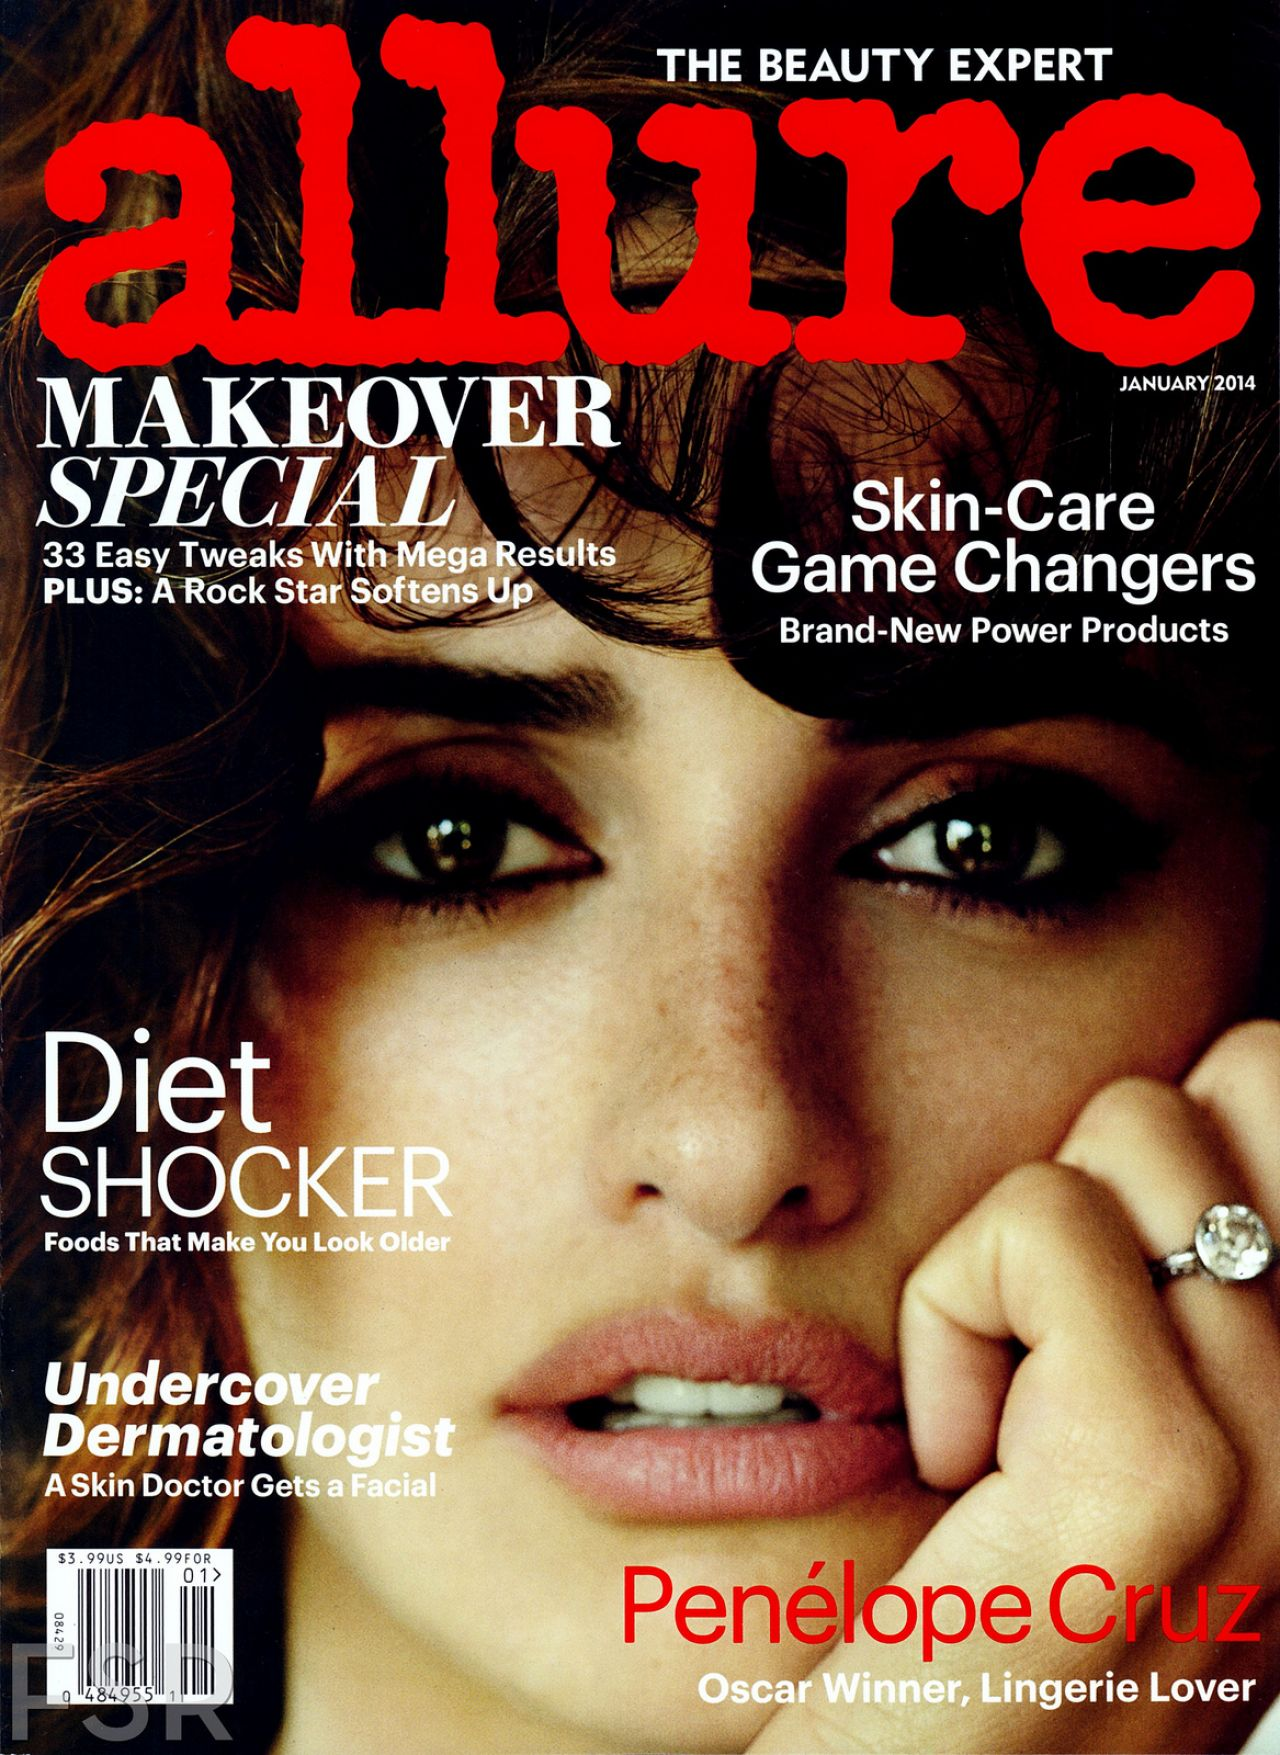 Penelope Cruz - ALLURE Magazine - January 2014 Issue